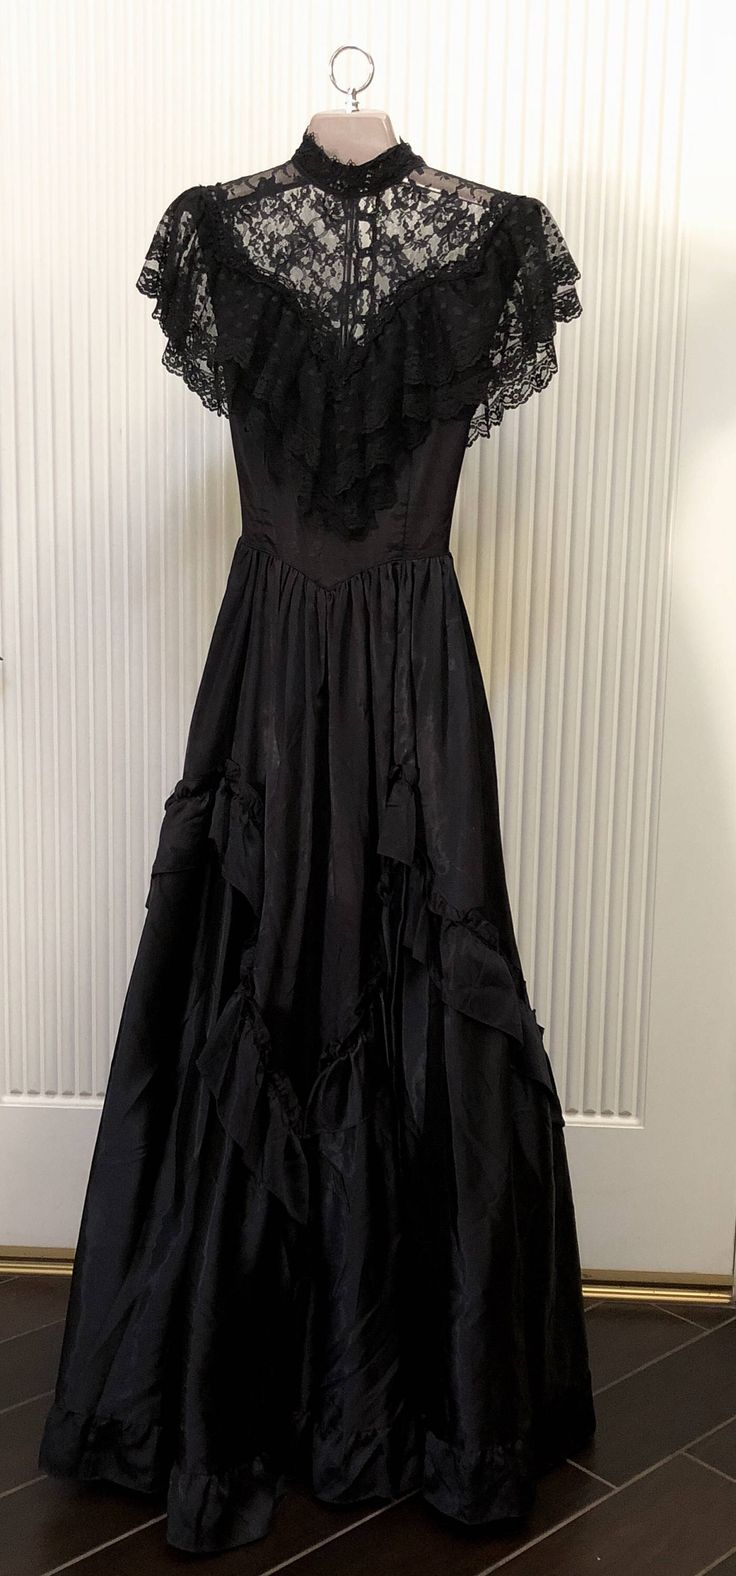 A personal favorite from my Etsy shop https://www.etsy.com/listing/555386436/vintage-gothic-victorian-gunne-sax-black